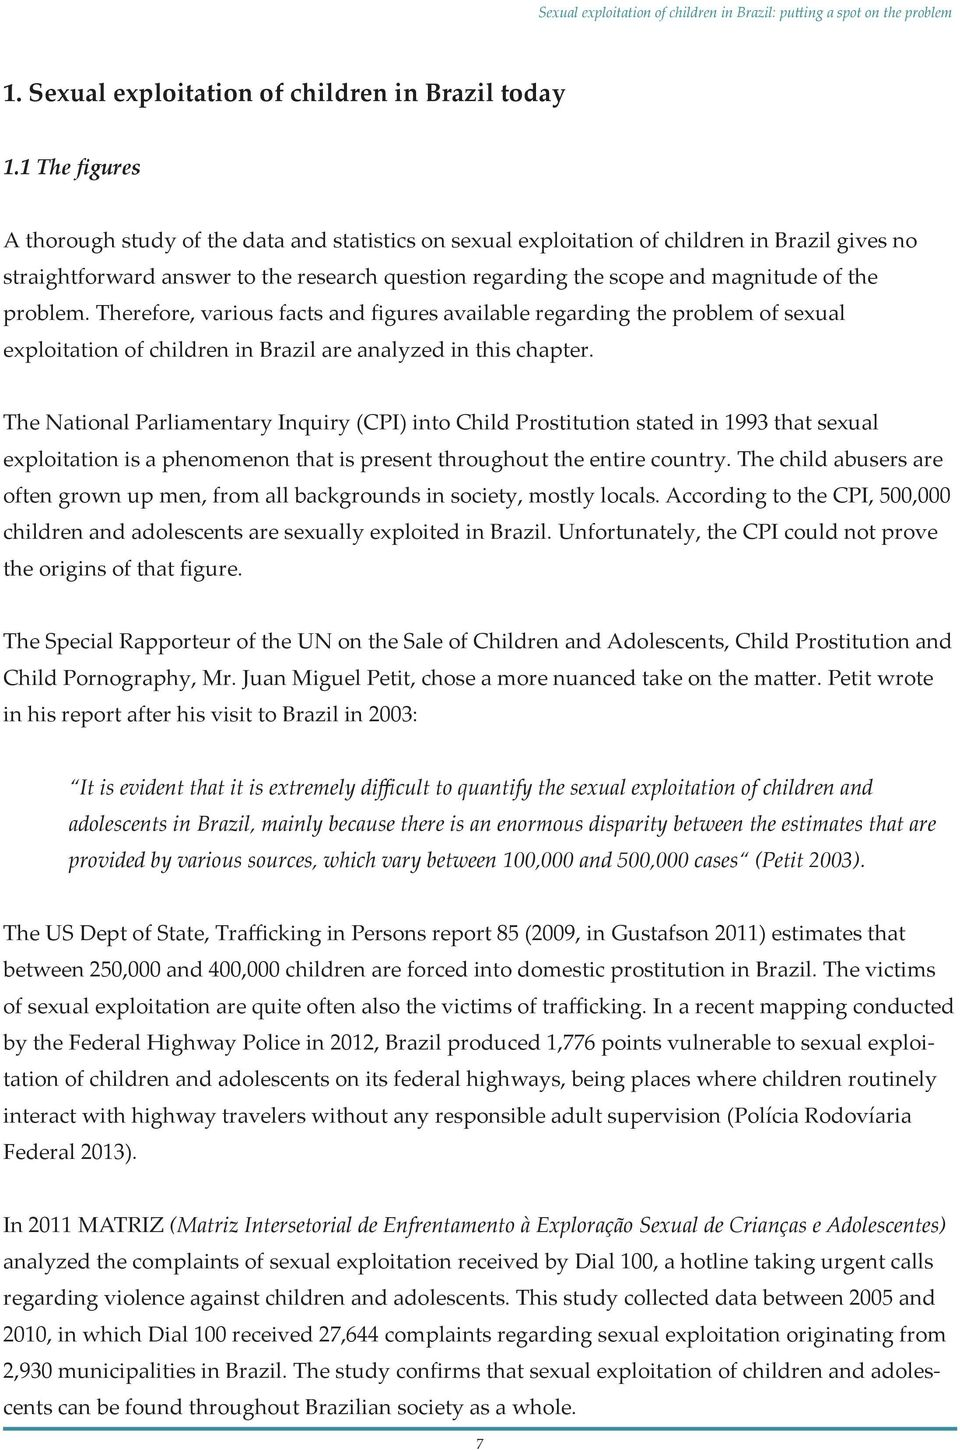 the problem. Therefore, various facts and figures available regarding the problem of sexual exploitation of children in Brazil are analyzed in this chapter.